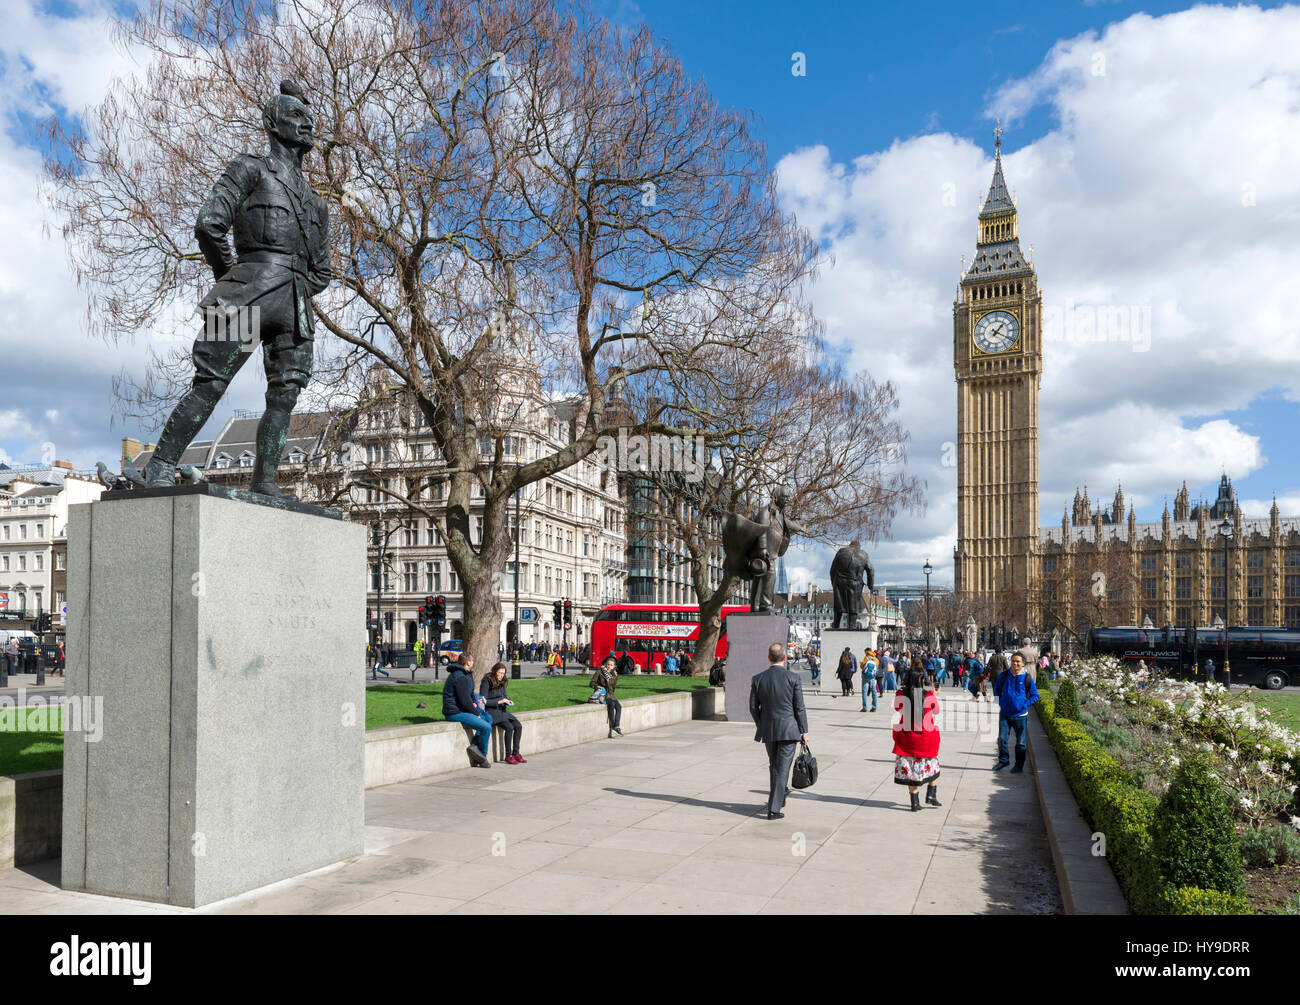 Houses of Parliament and Big Ben from Parliament Square, London, England, UK - Stock Image